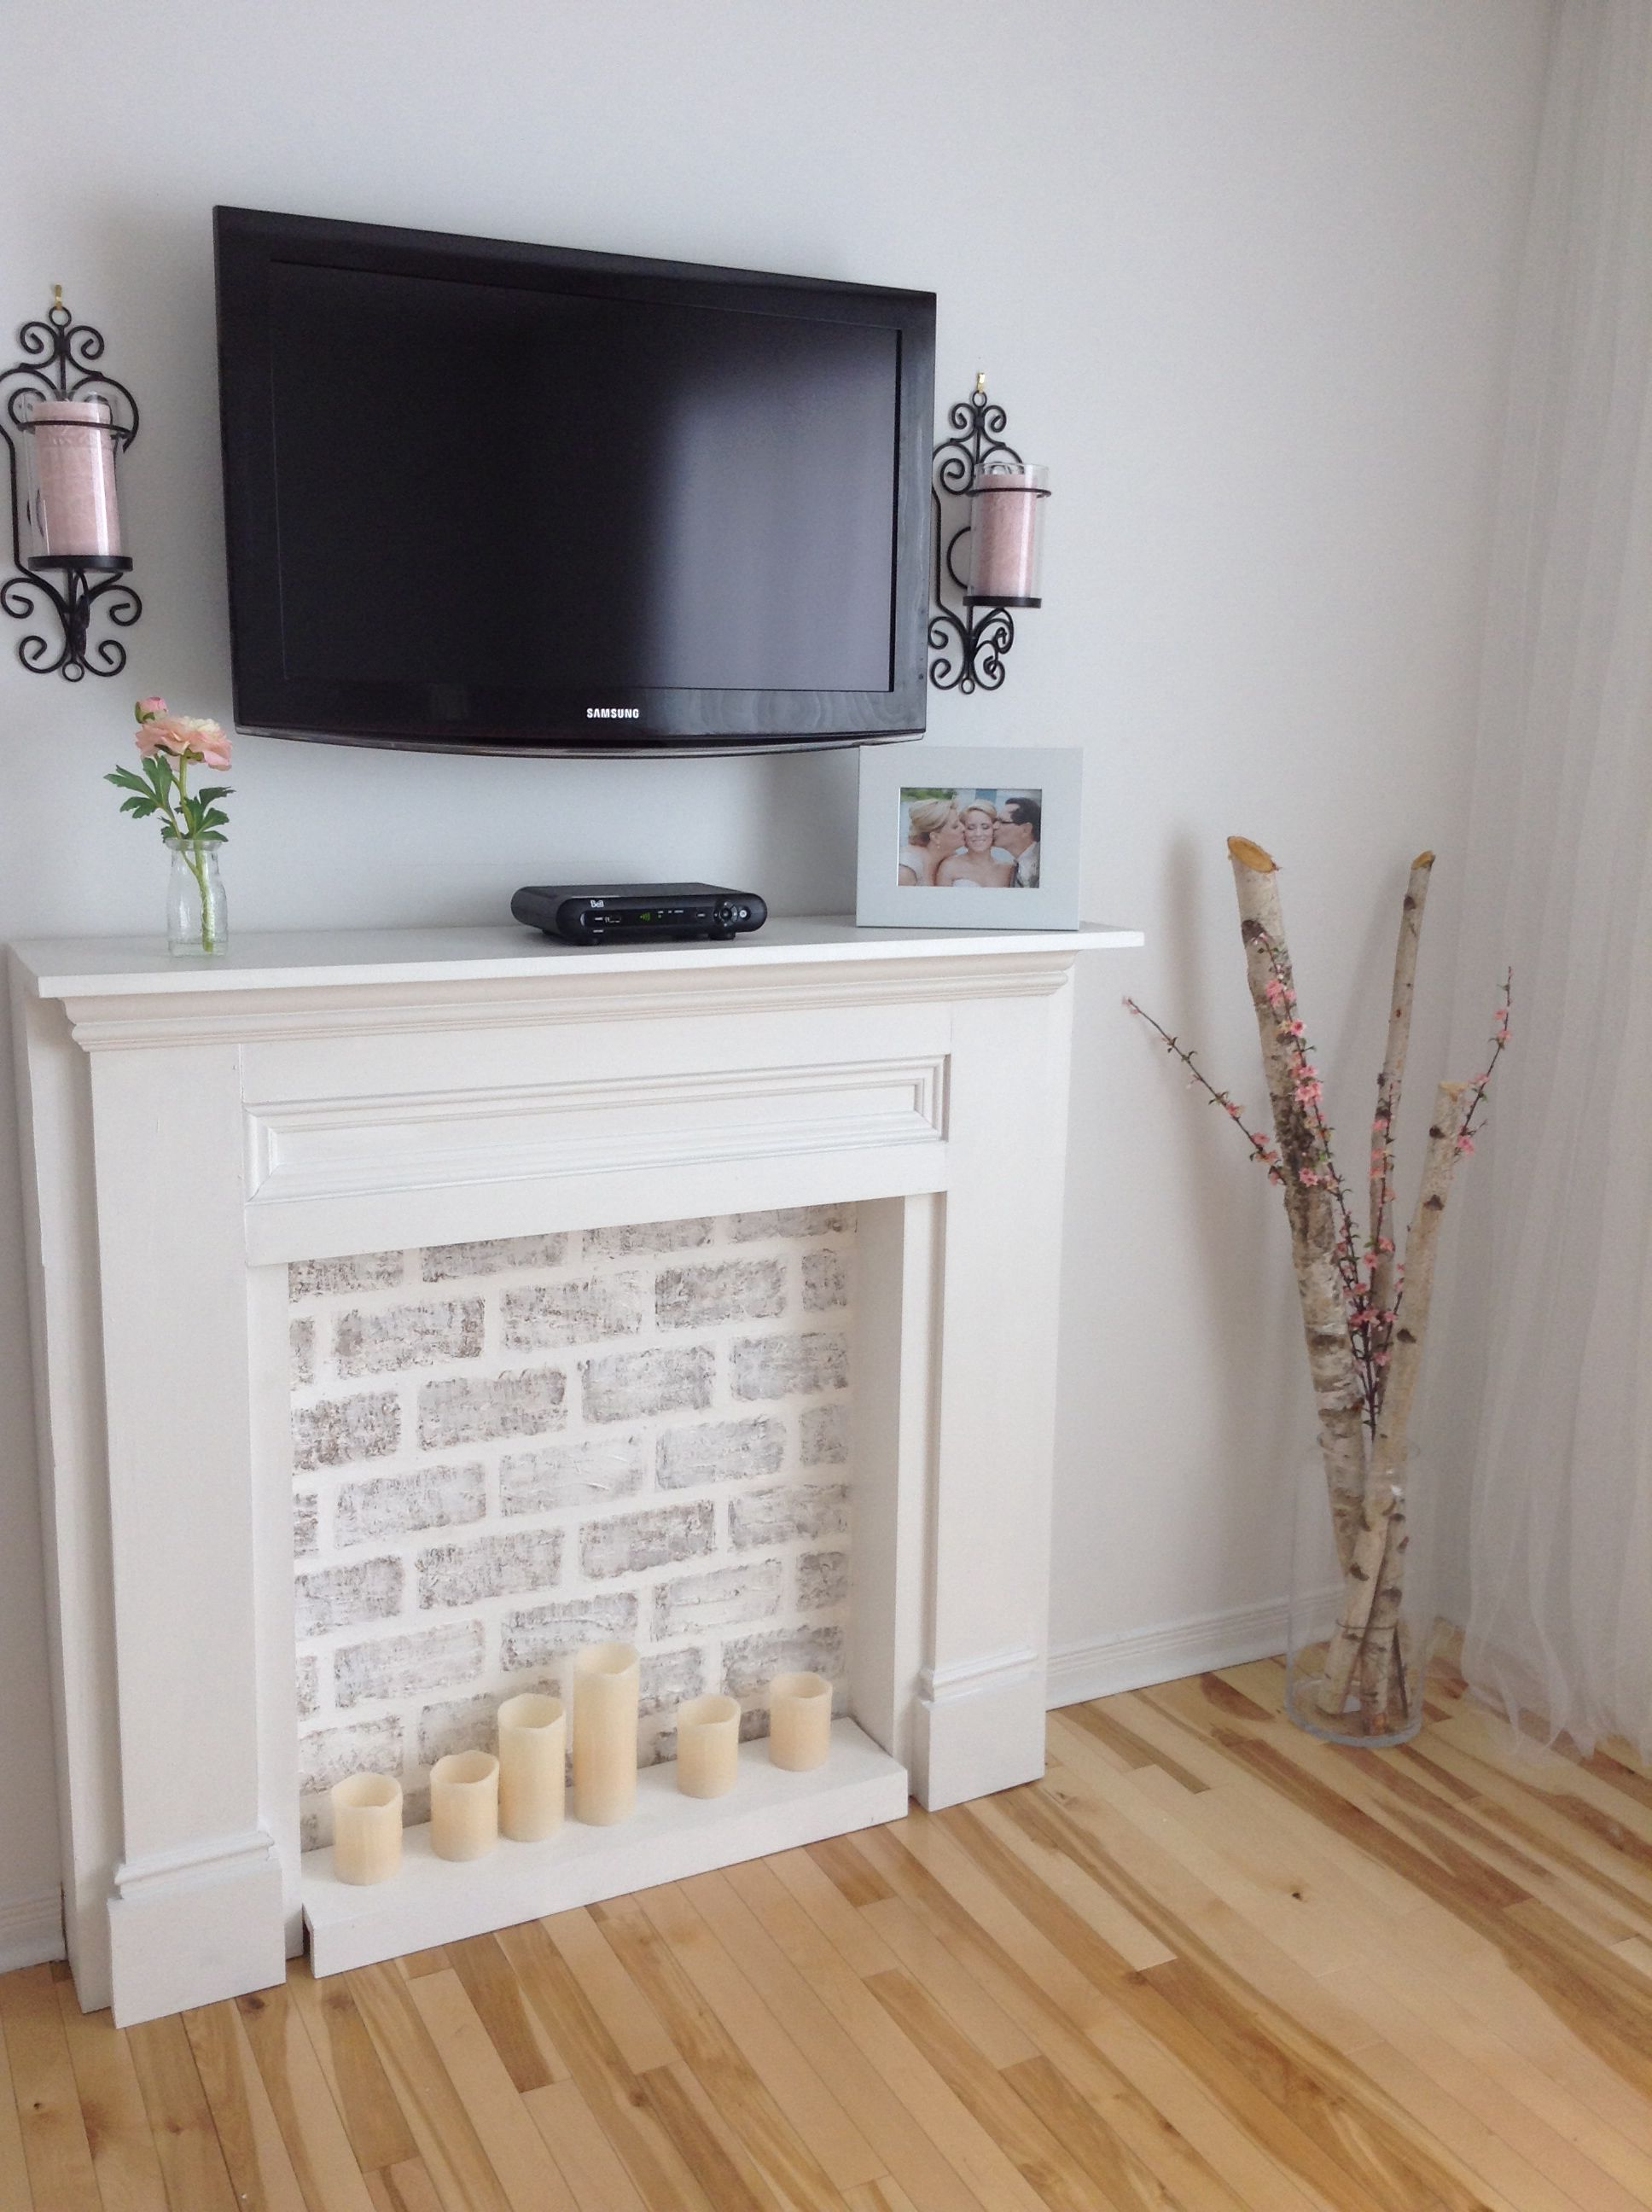 d sharpen op faux prod fireplace fake outlet sears hei product marble details crawford wid jsp